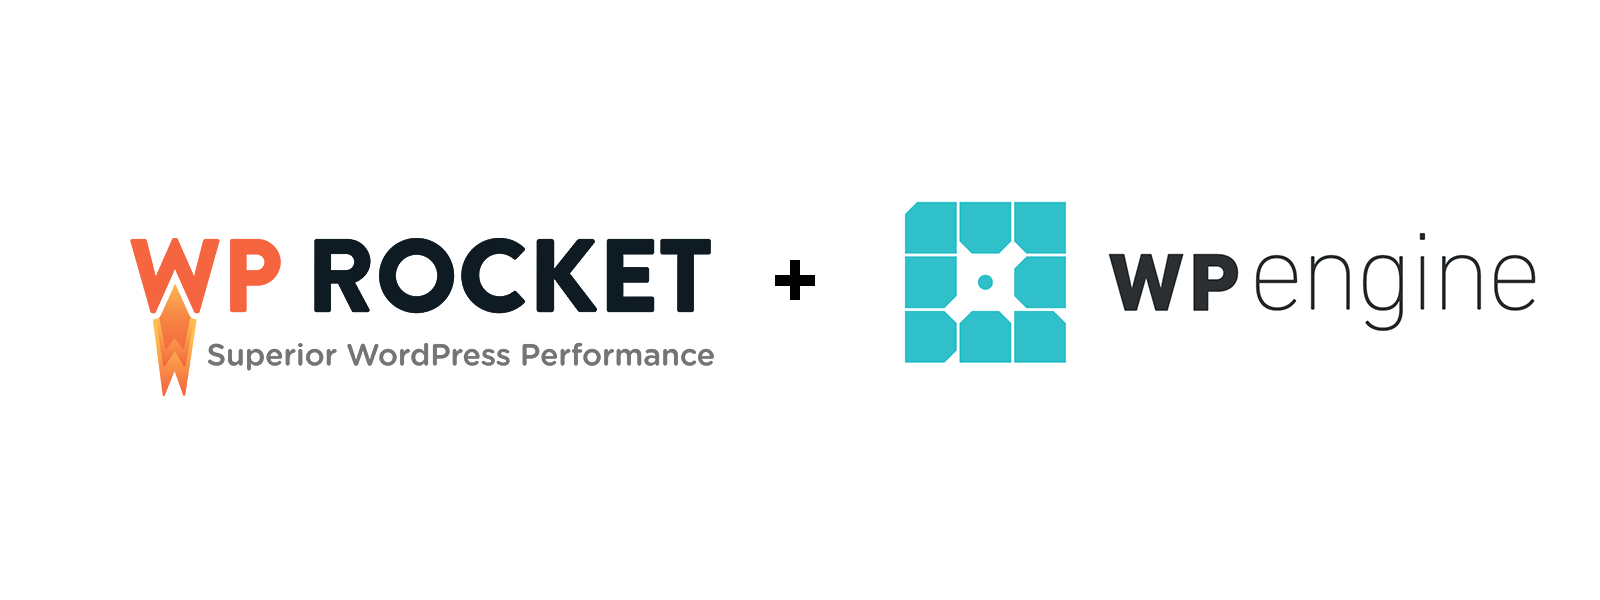 WP Engine with WP Rocket